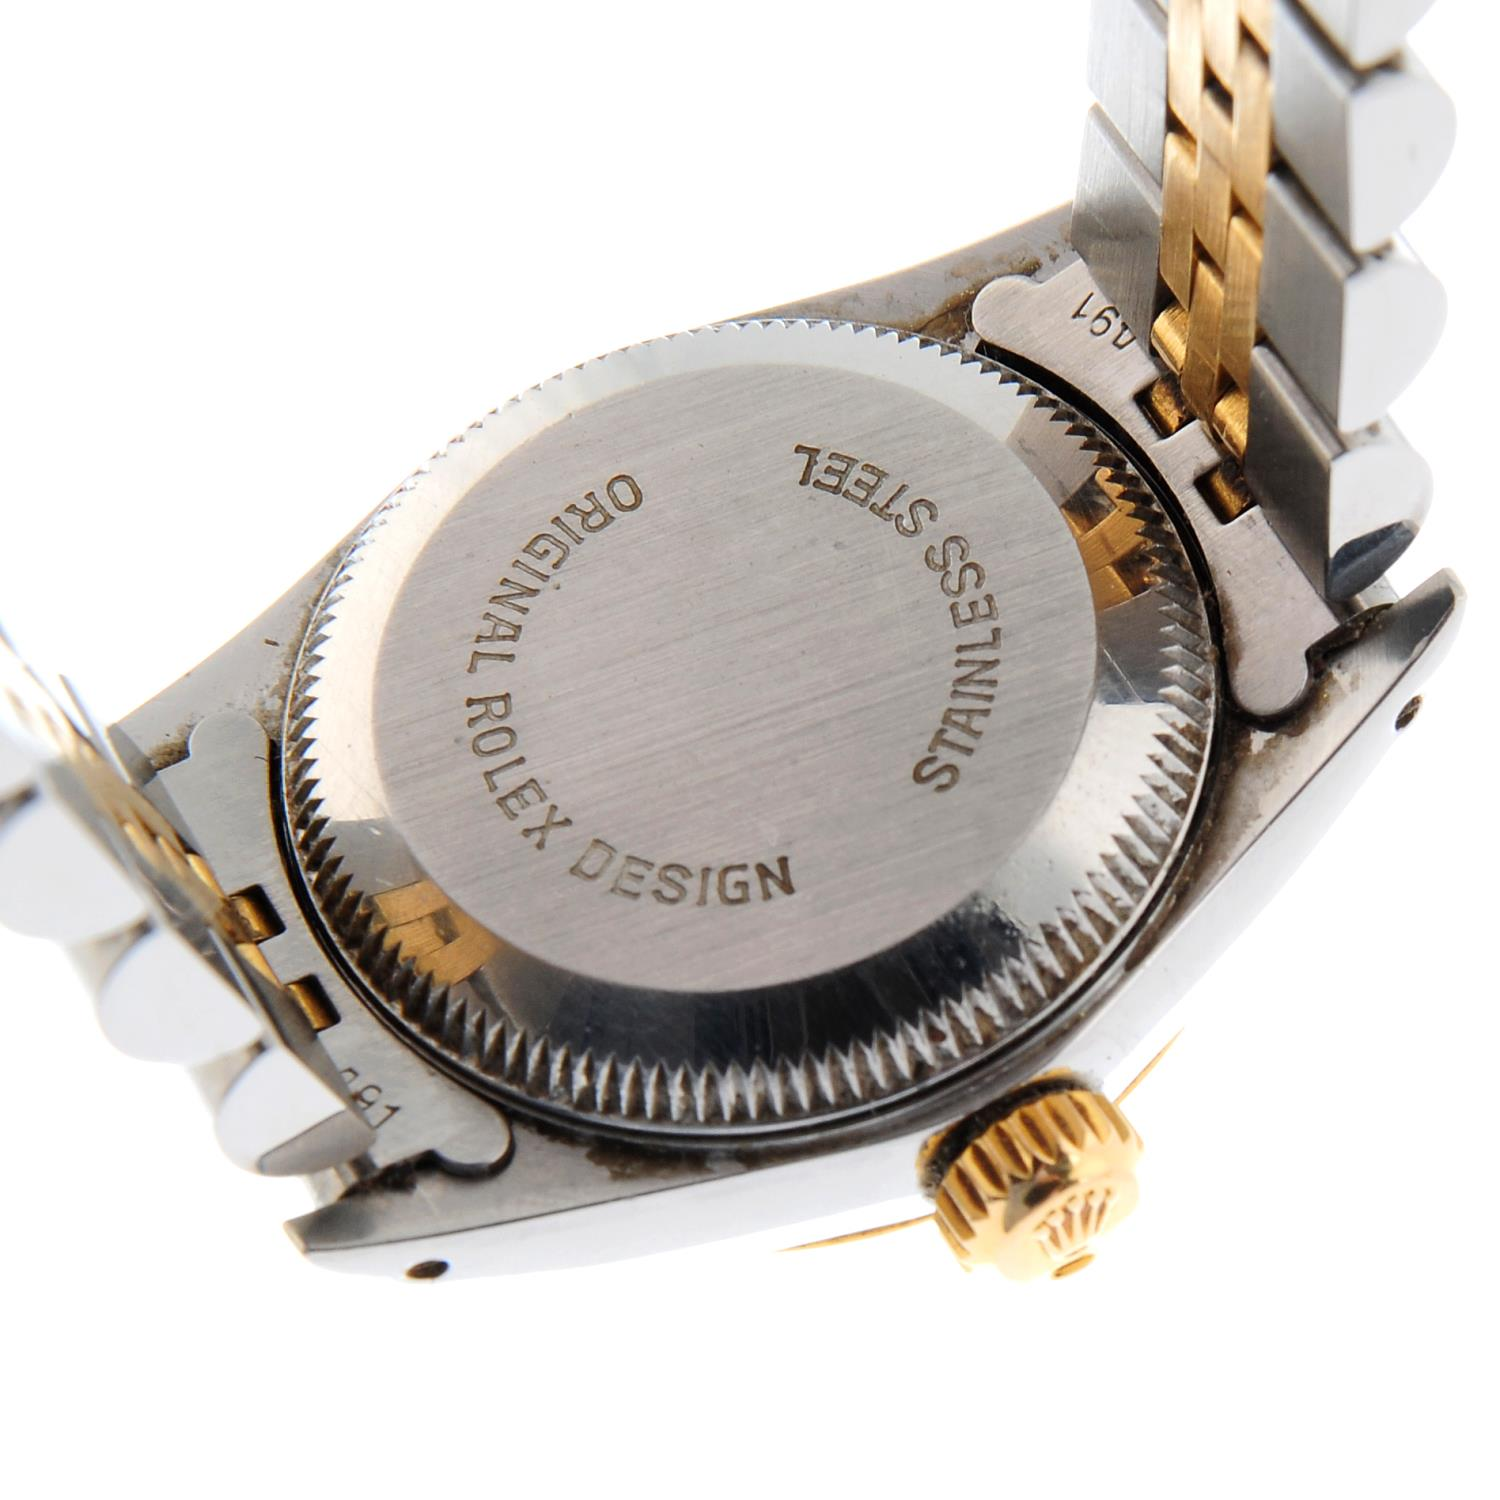 ROLEX - an Oyster Perpetual bracelet watch. - Image 4 of 4